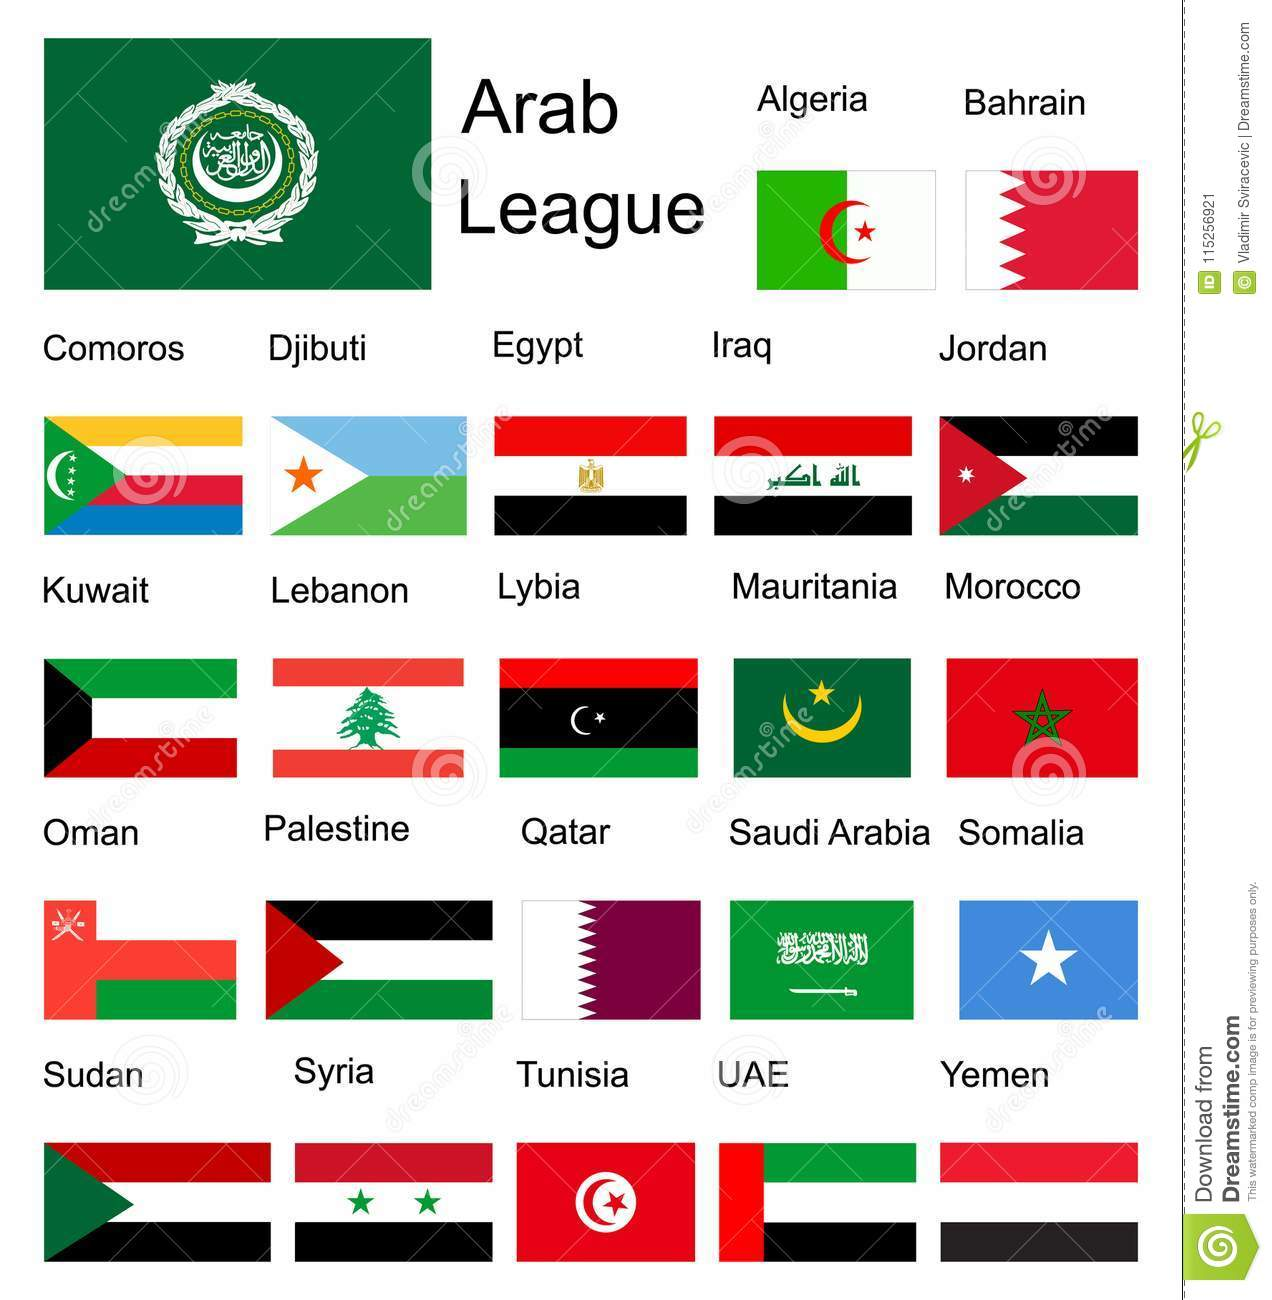 Picture of: Arab League Arab Member Countries Flags Stock Illustration Illustration Of Country Green 115256921